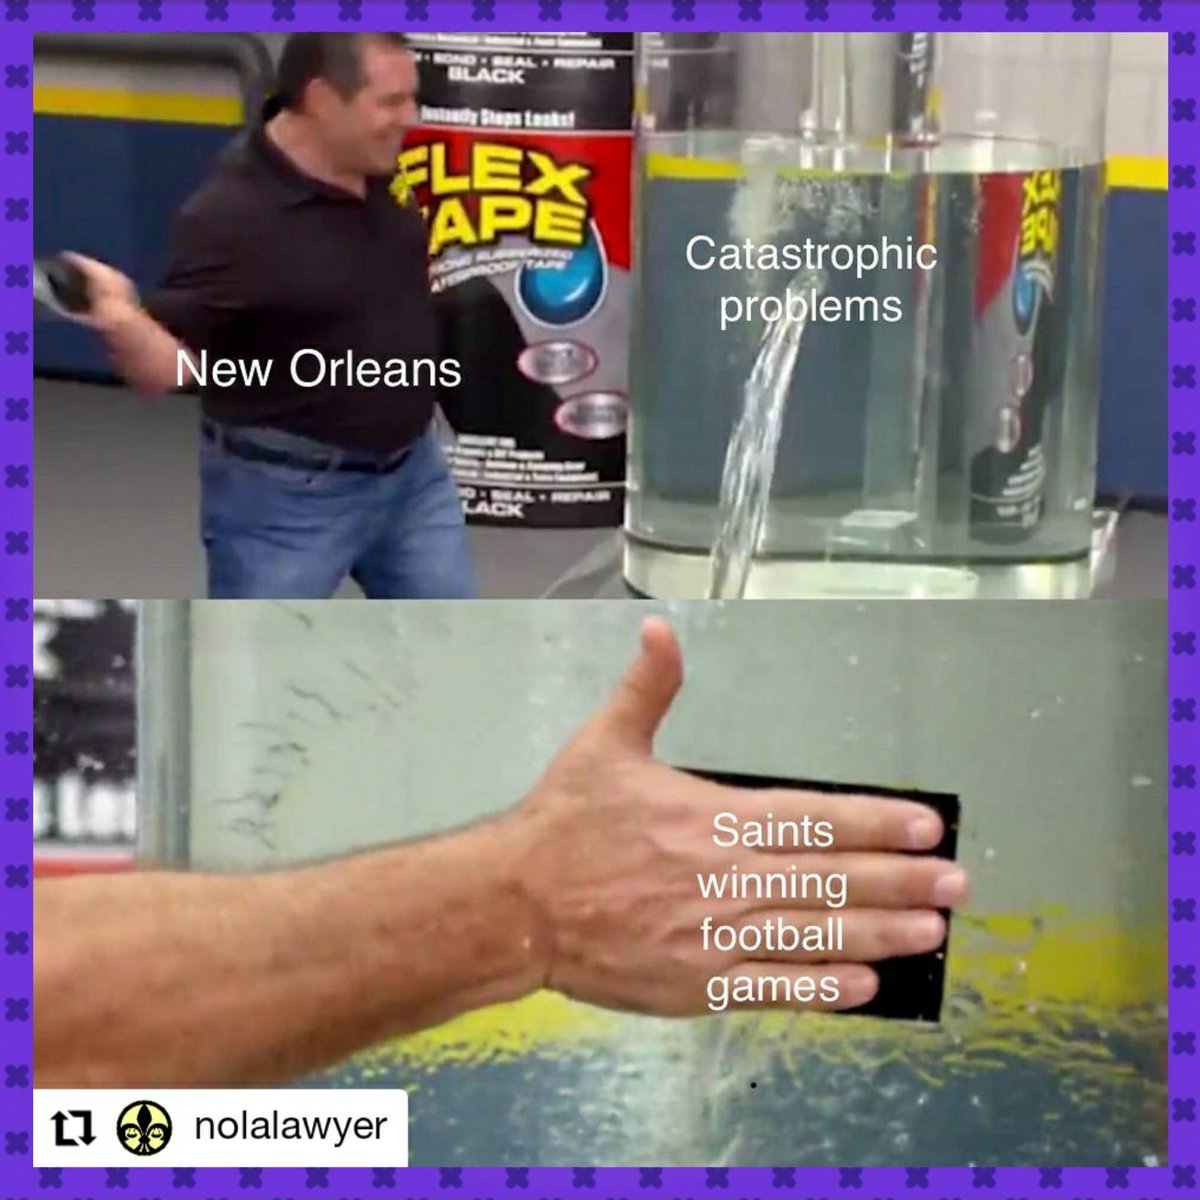 That outta do it. ⚜☝  #Repost @nolalawyer • • • • • • New Orleans, Louisiana  🎼 Every little thing gonna be alright 🎵  #WHODAT #Saints   ⚜ In the middle of it all. #NOLA #NewOrleans #NeutralNews #NGN504